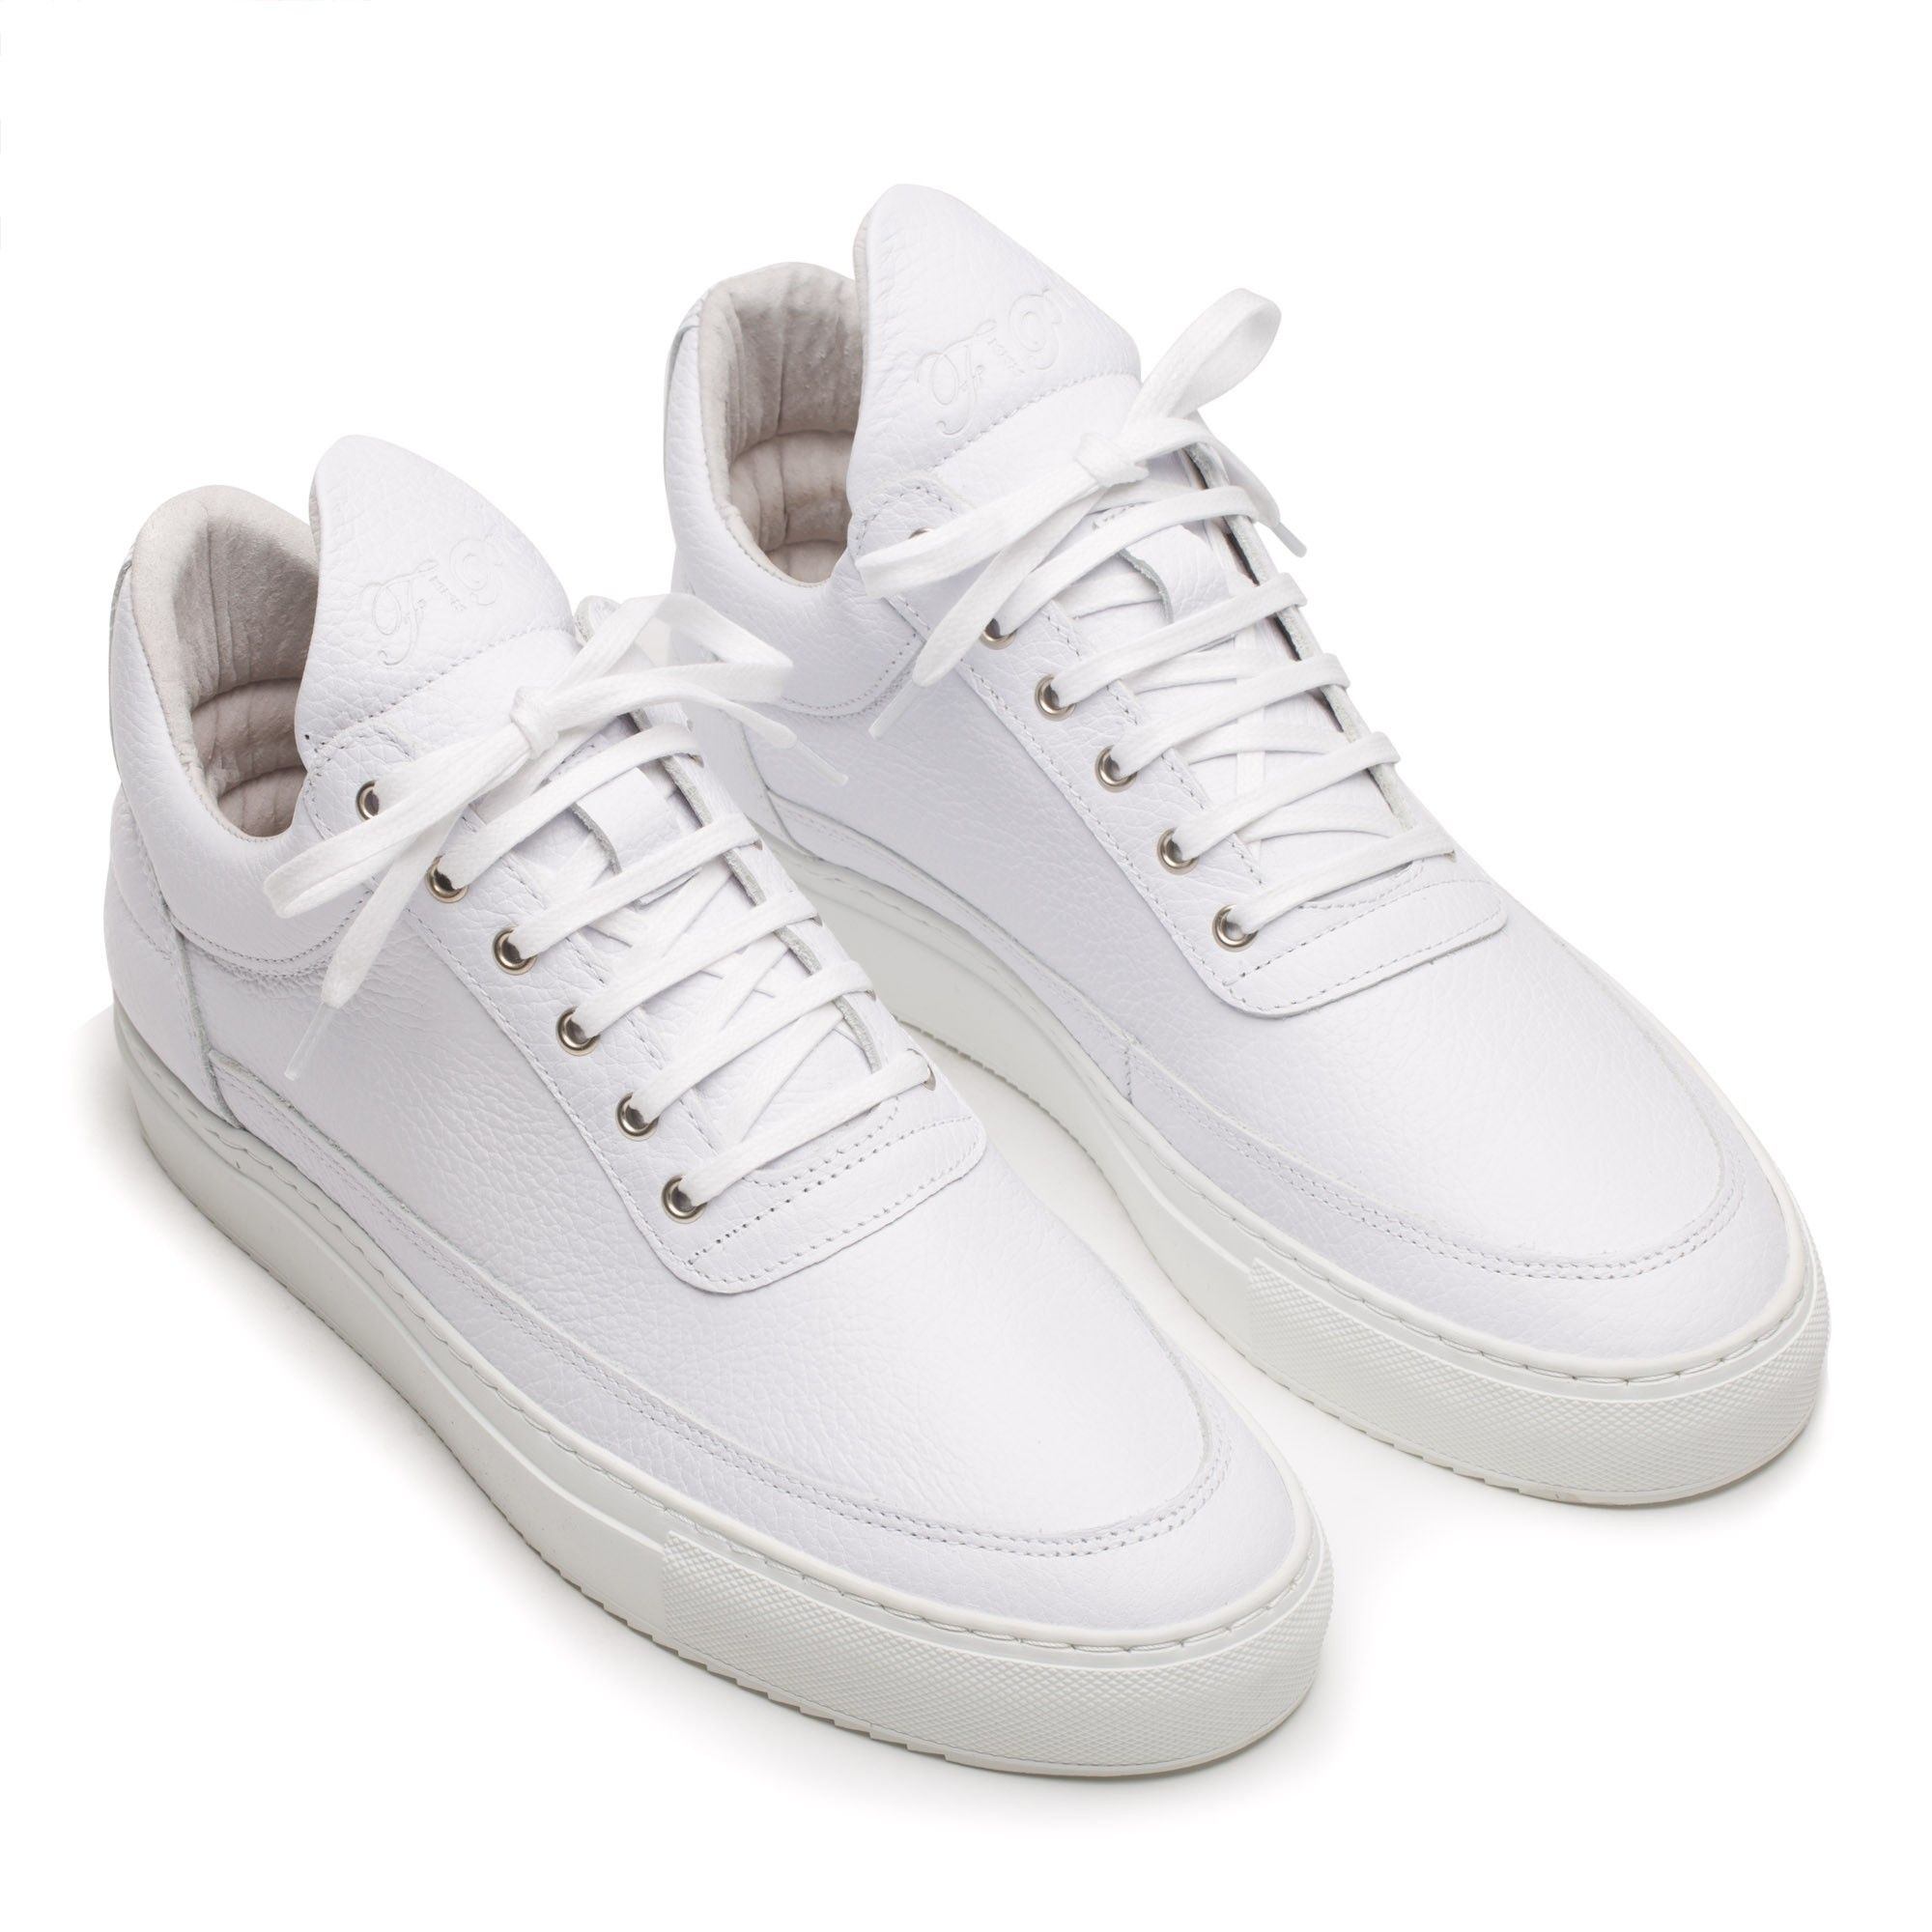 All Models : Low Top Grain White